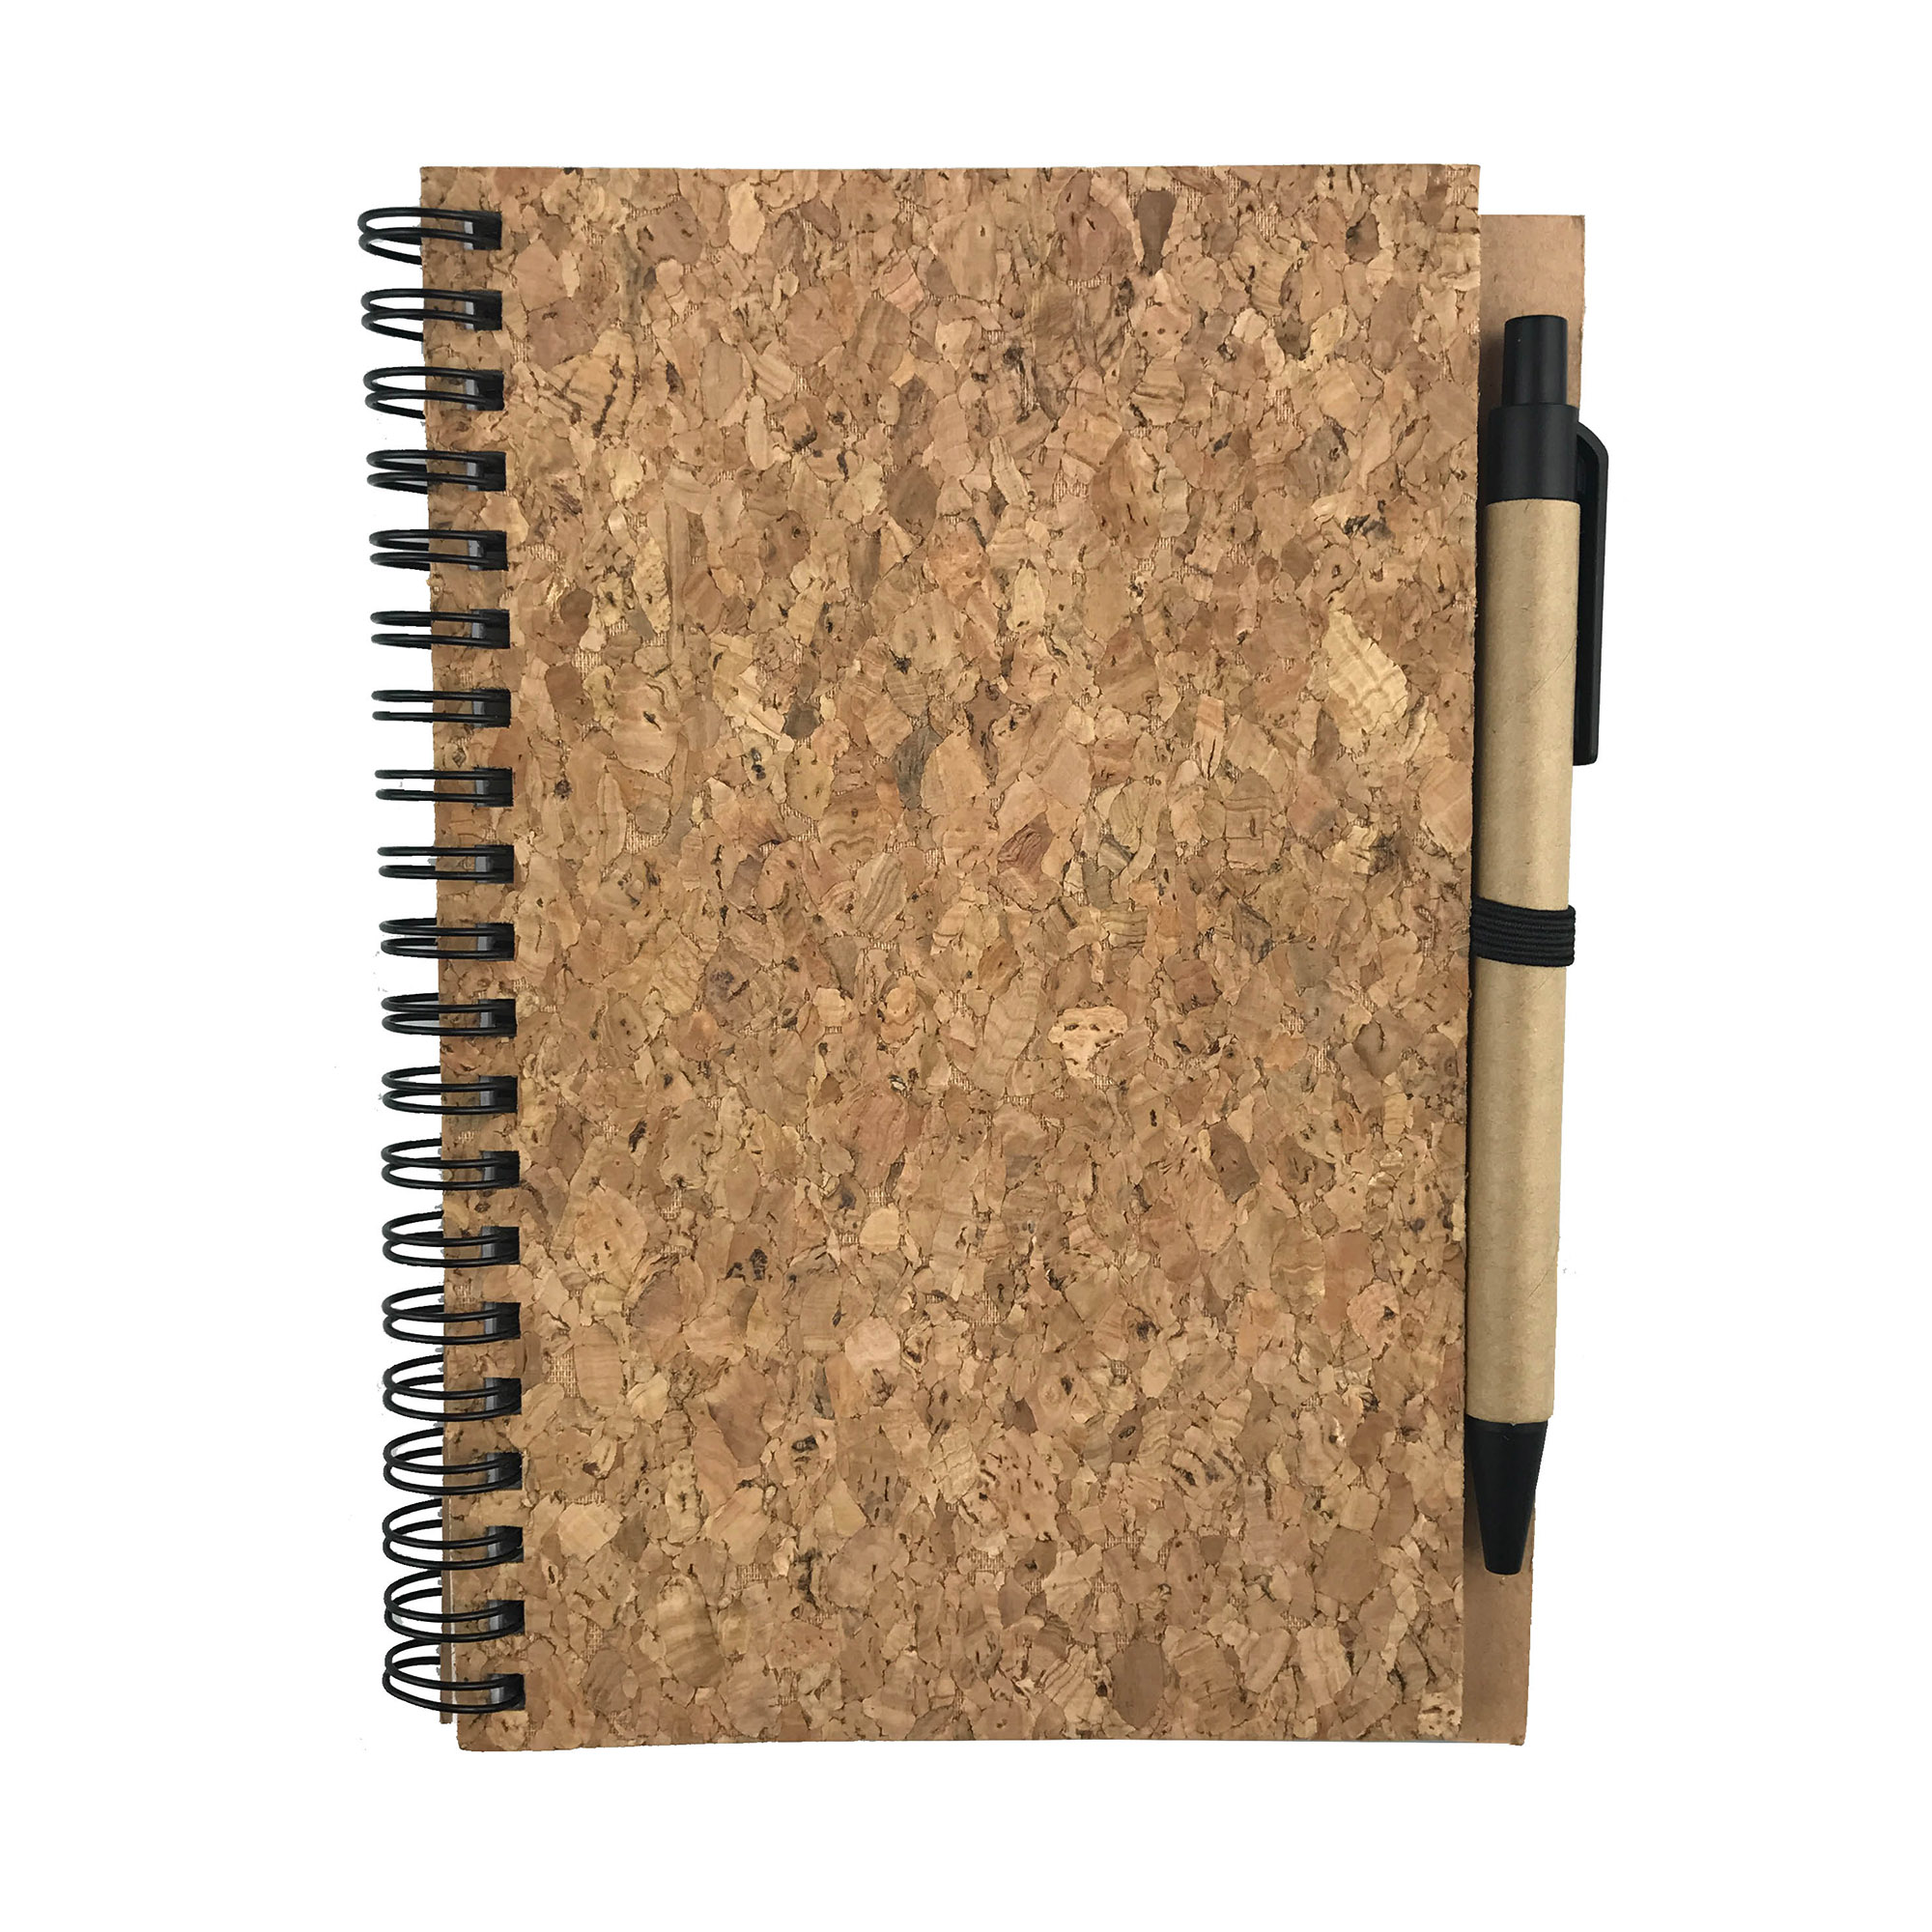 FATINO B6 CORK NOTE BOOK - 1 Colour Print